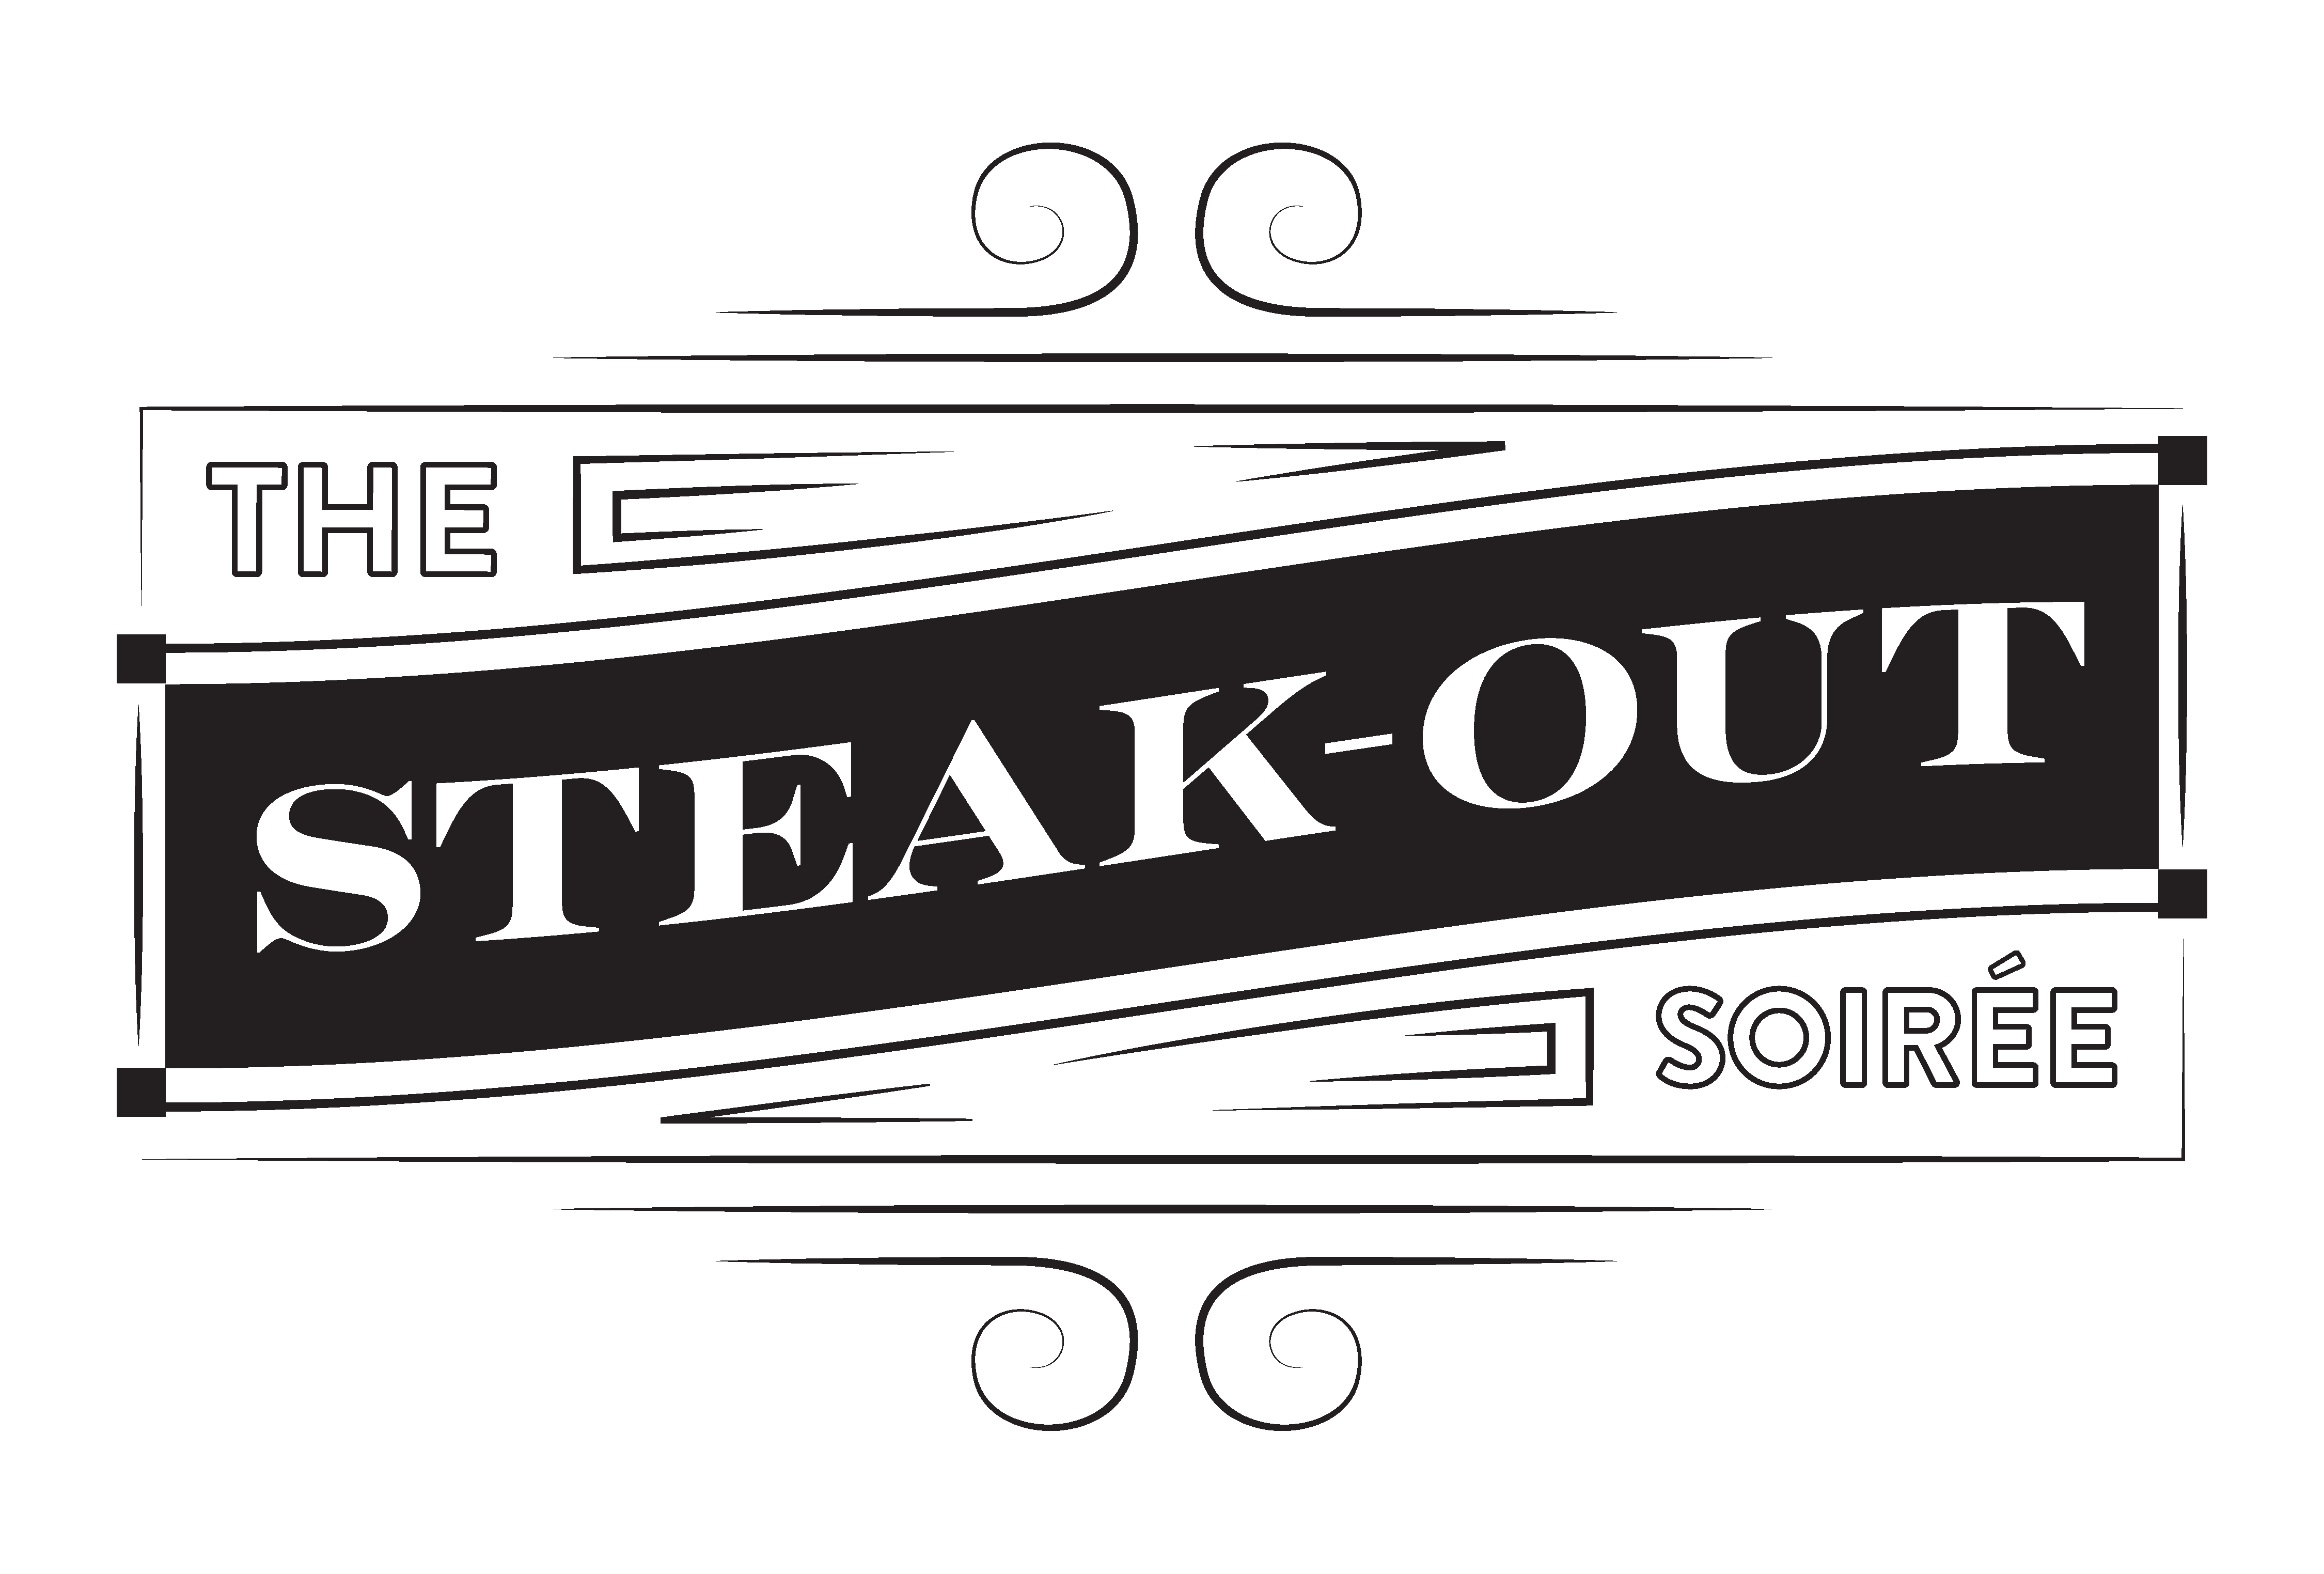 The Steak-Out Soiree